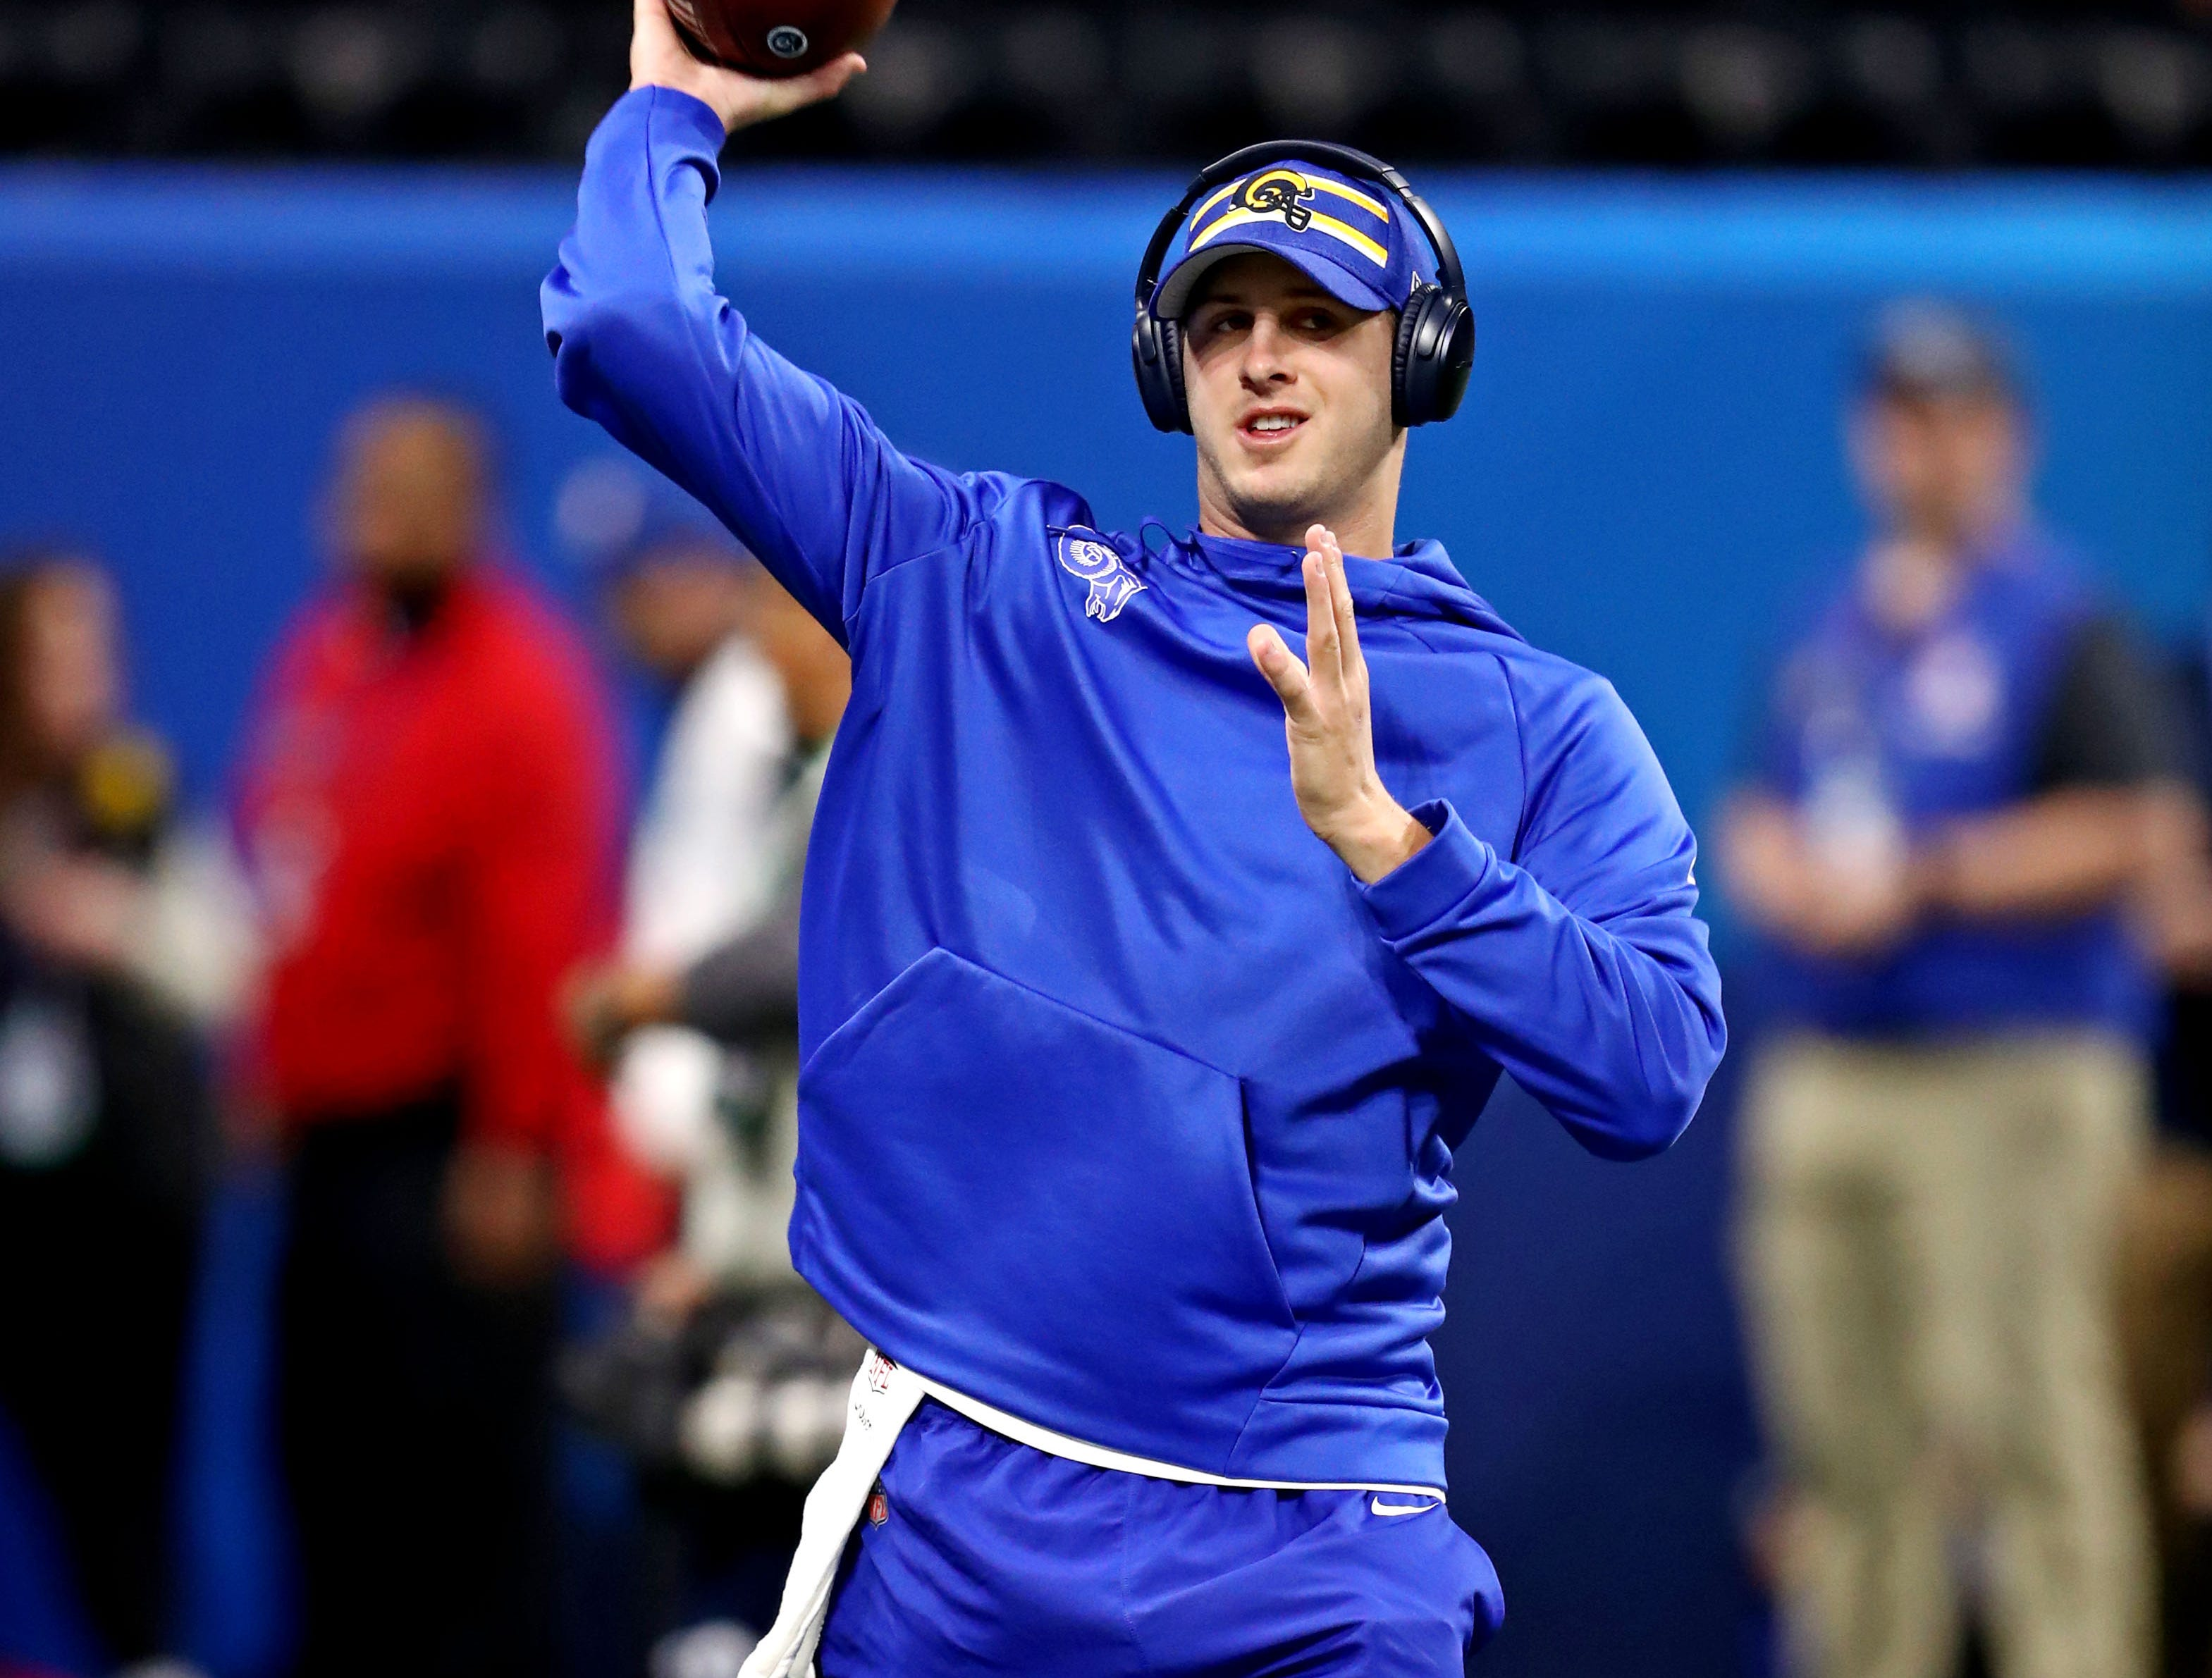 Los Angeles Rams quarterback Jared Goff warms up before Super Bowl LIII at Mercedes-Benz Stadium.